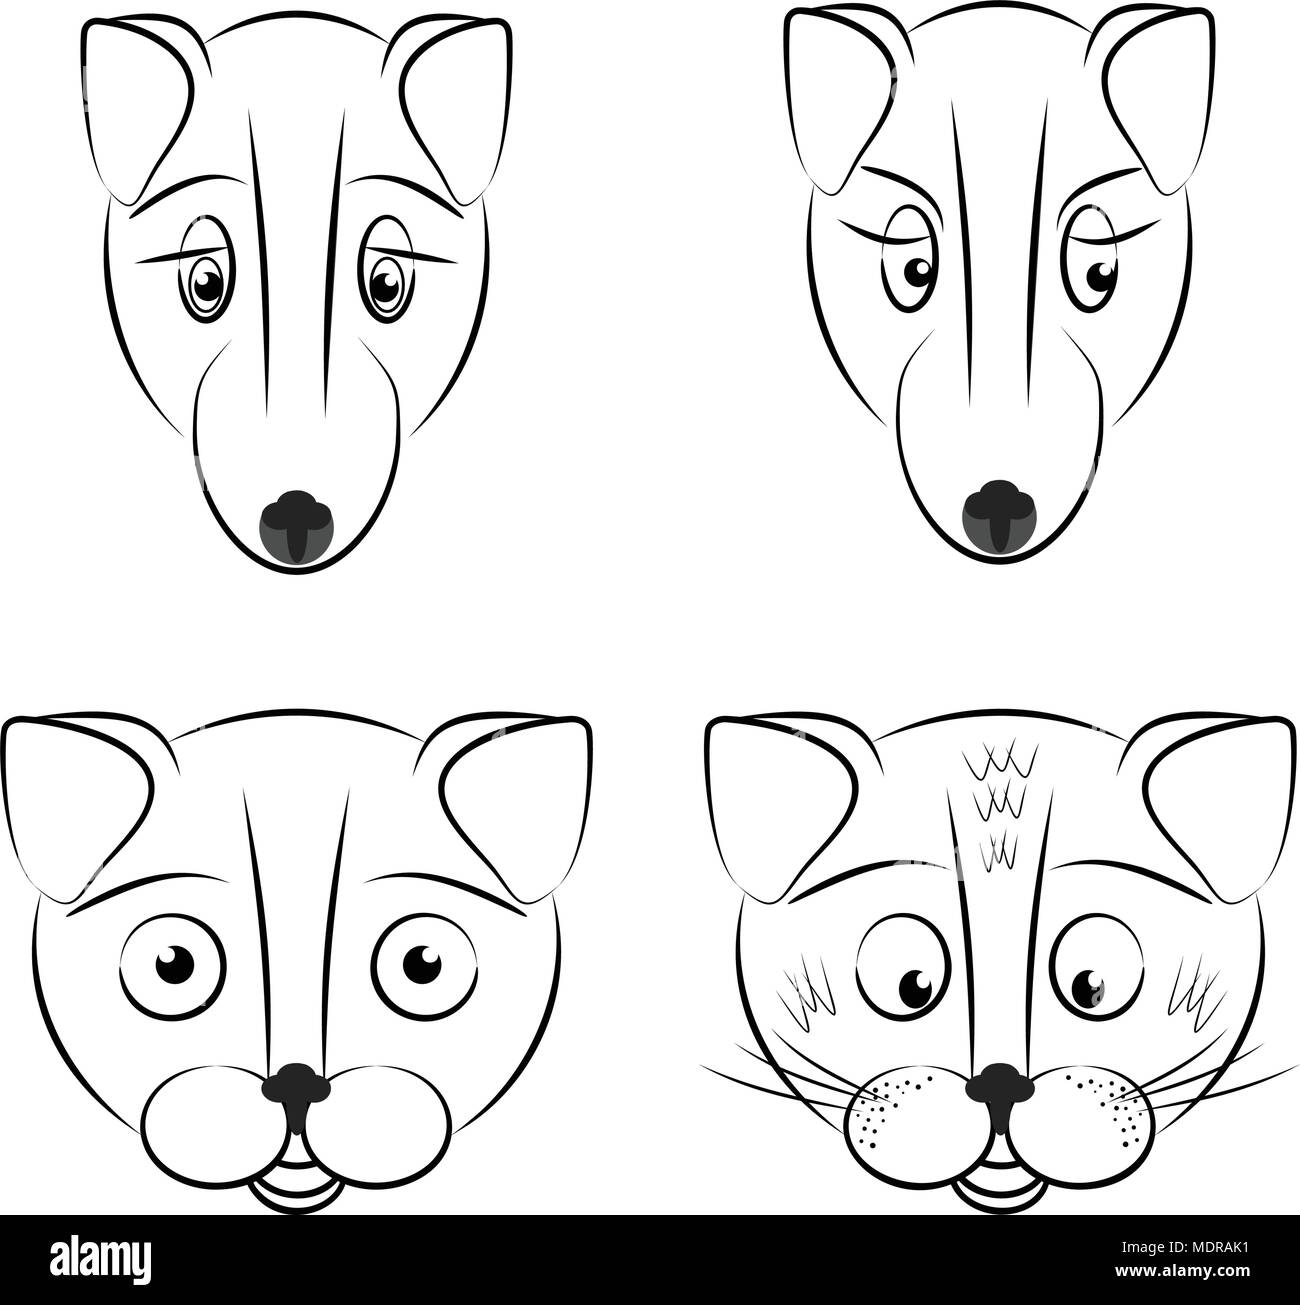 Pack Animals Black And White Stock Photos Images Alamy Harbor Seal Skeleton Diagram Carnivora Phocidae Outline Icons Set Linear Style Symbols Collection Image